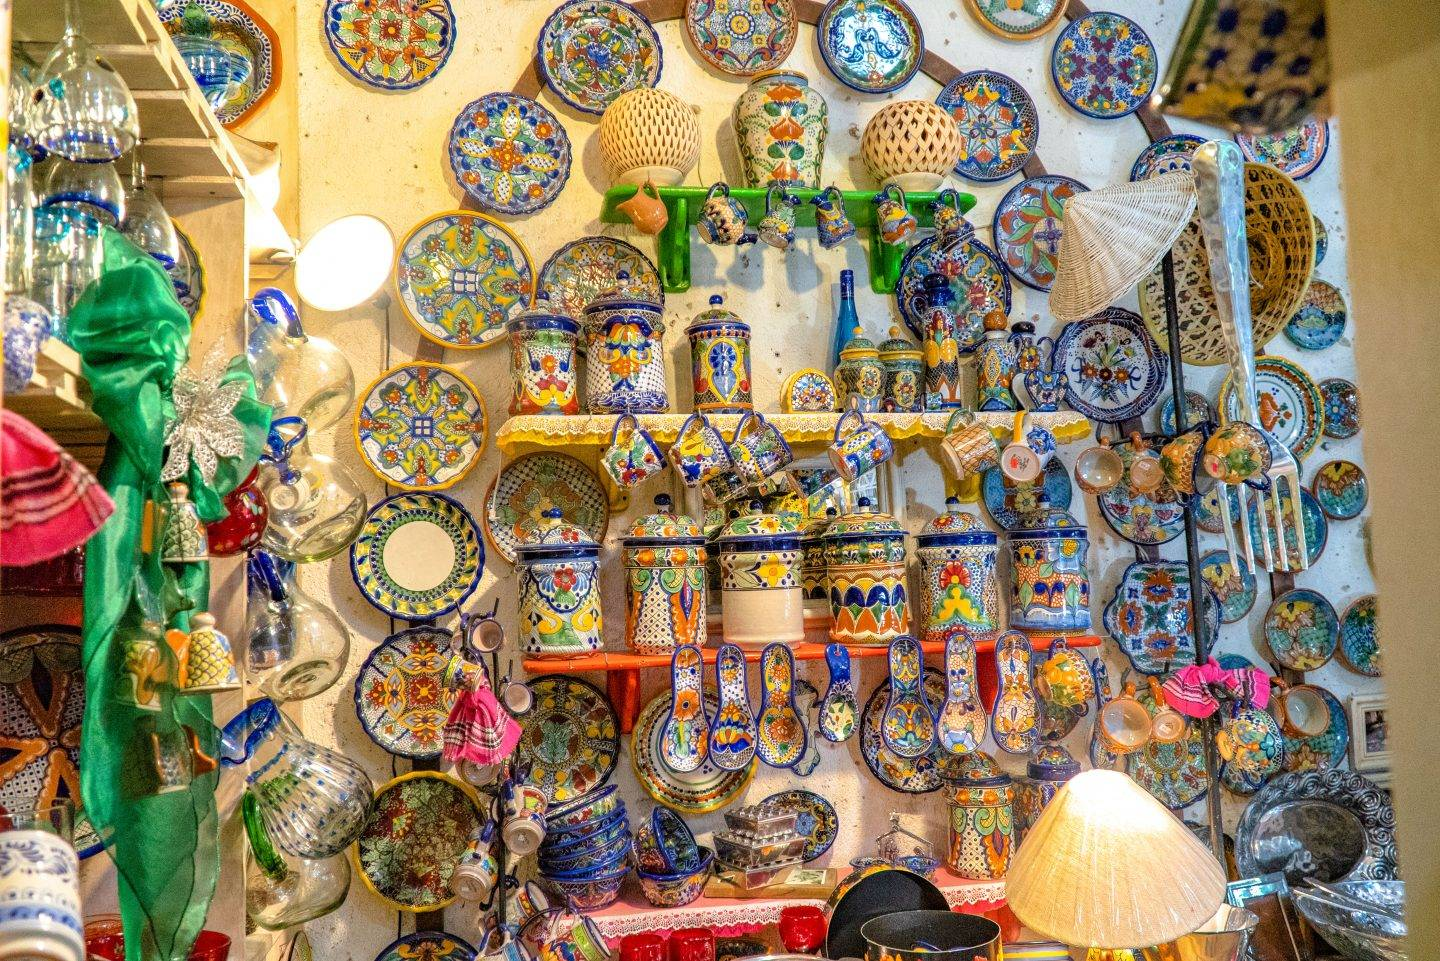 Siete Detalles – The owner obtains her merchandise from all over Mexico. In fact, I've got a set of her dishes in my home.